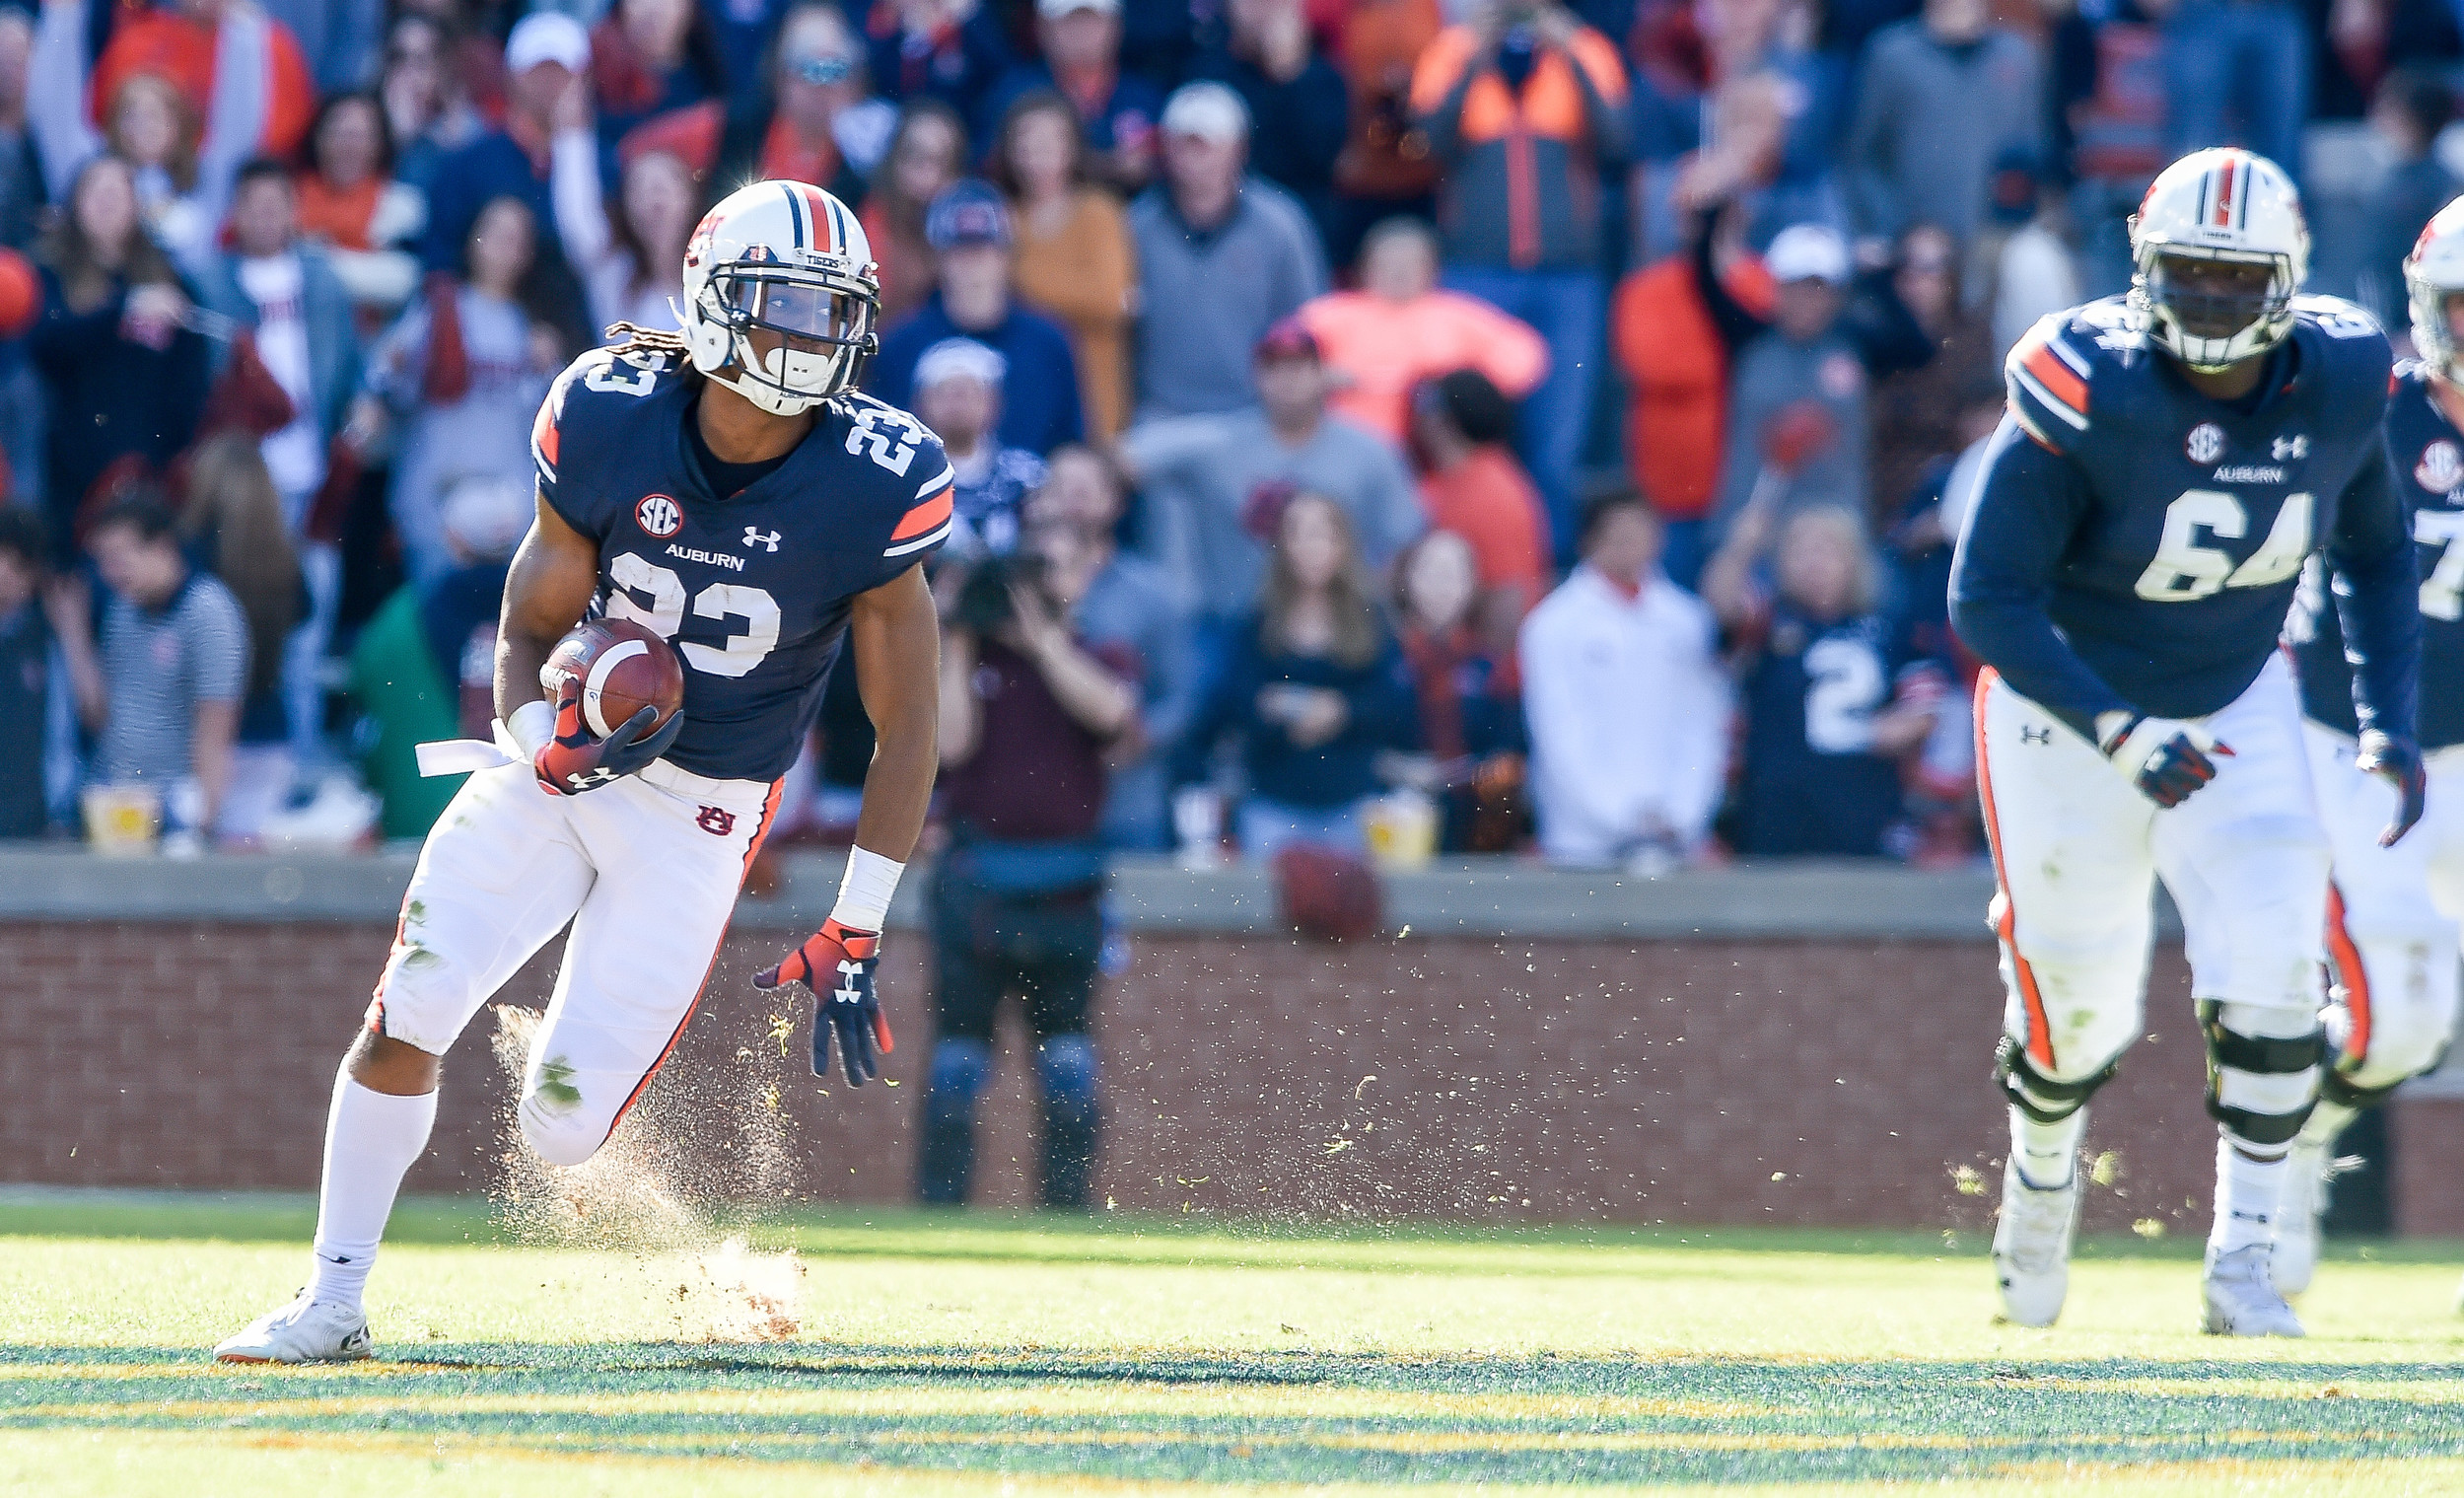 Auburn Tigers wide receiver Ryan Davis (23) runs during the second half of an NCAA football game against the Texas A&M Aggies Saturday, November 3, 2018, at Jordan-Hare Stadium in Auburn, Ala. (Photo by Jeff Johnsey)